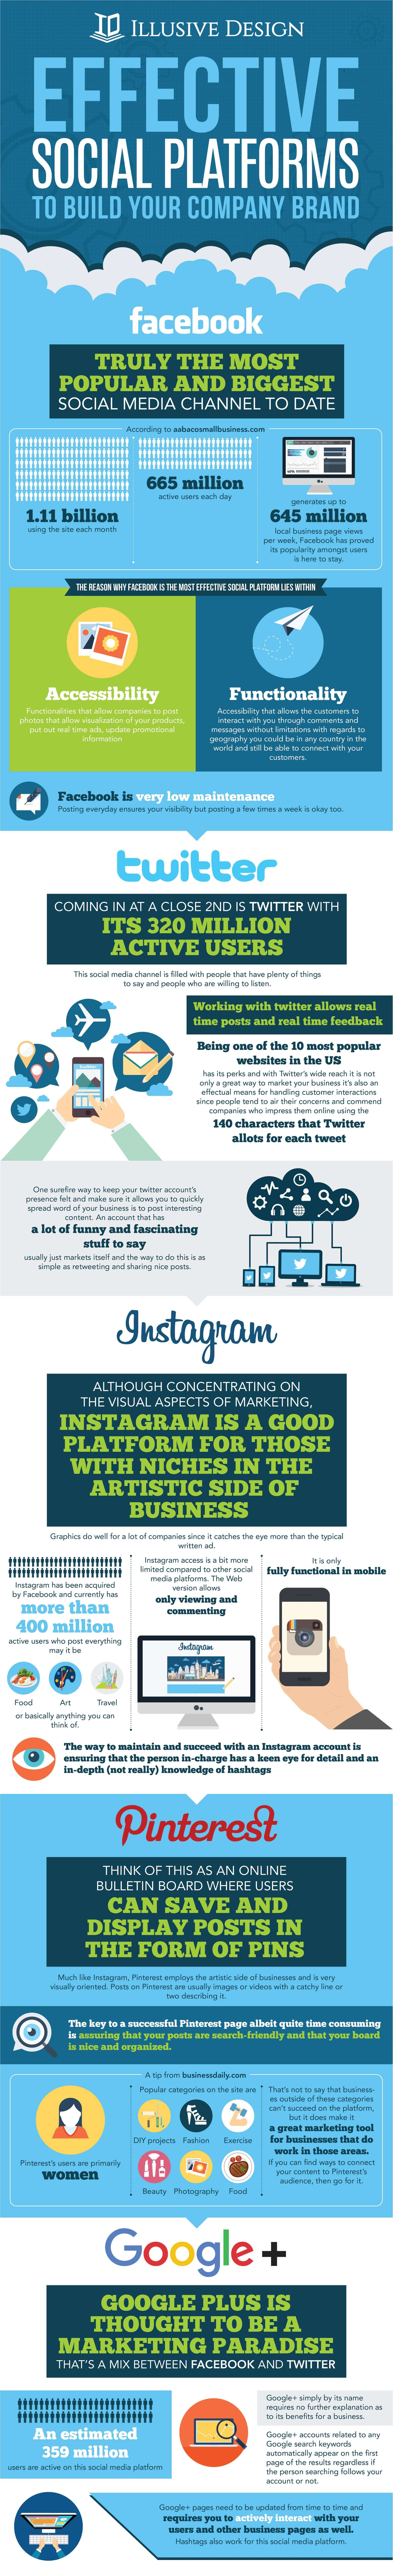 infographic-smm-social-media-marketing